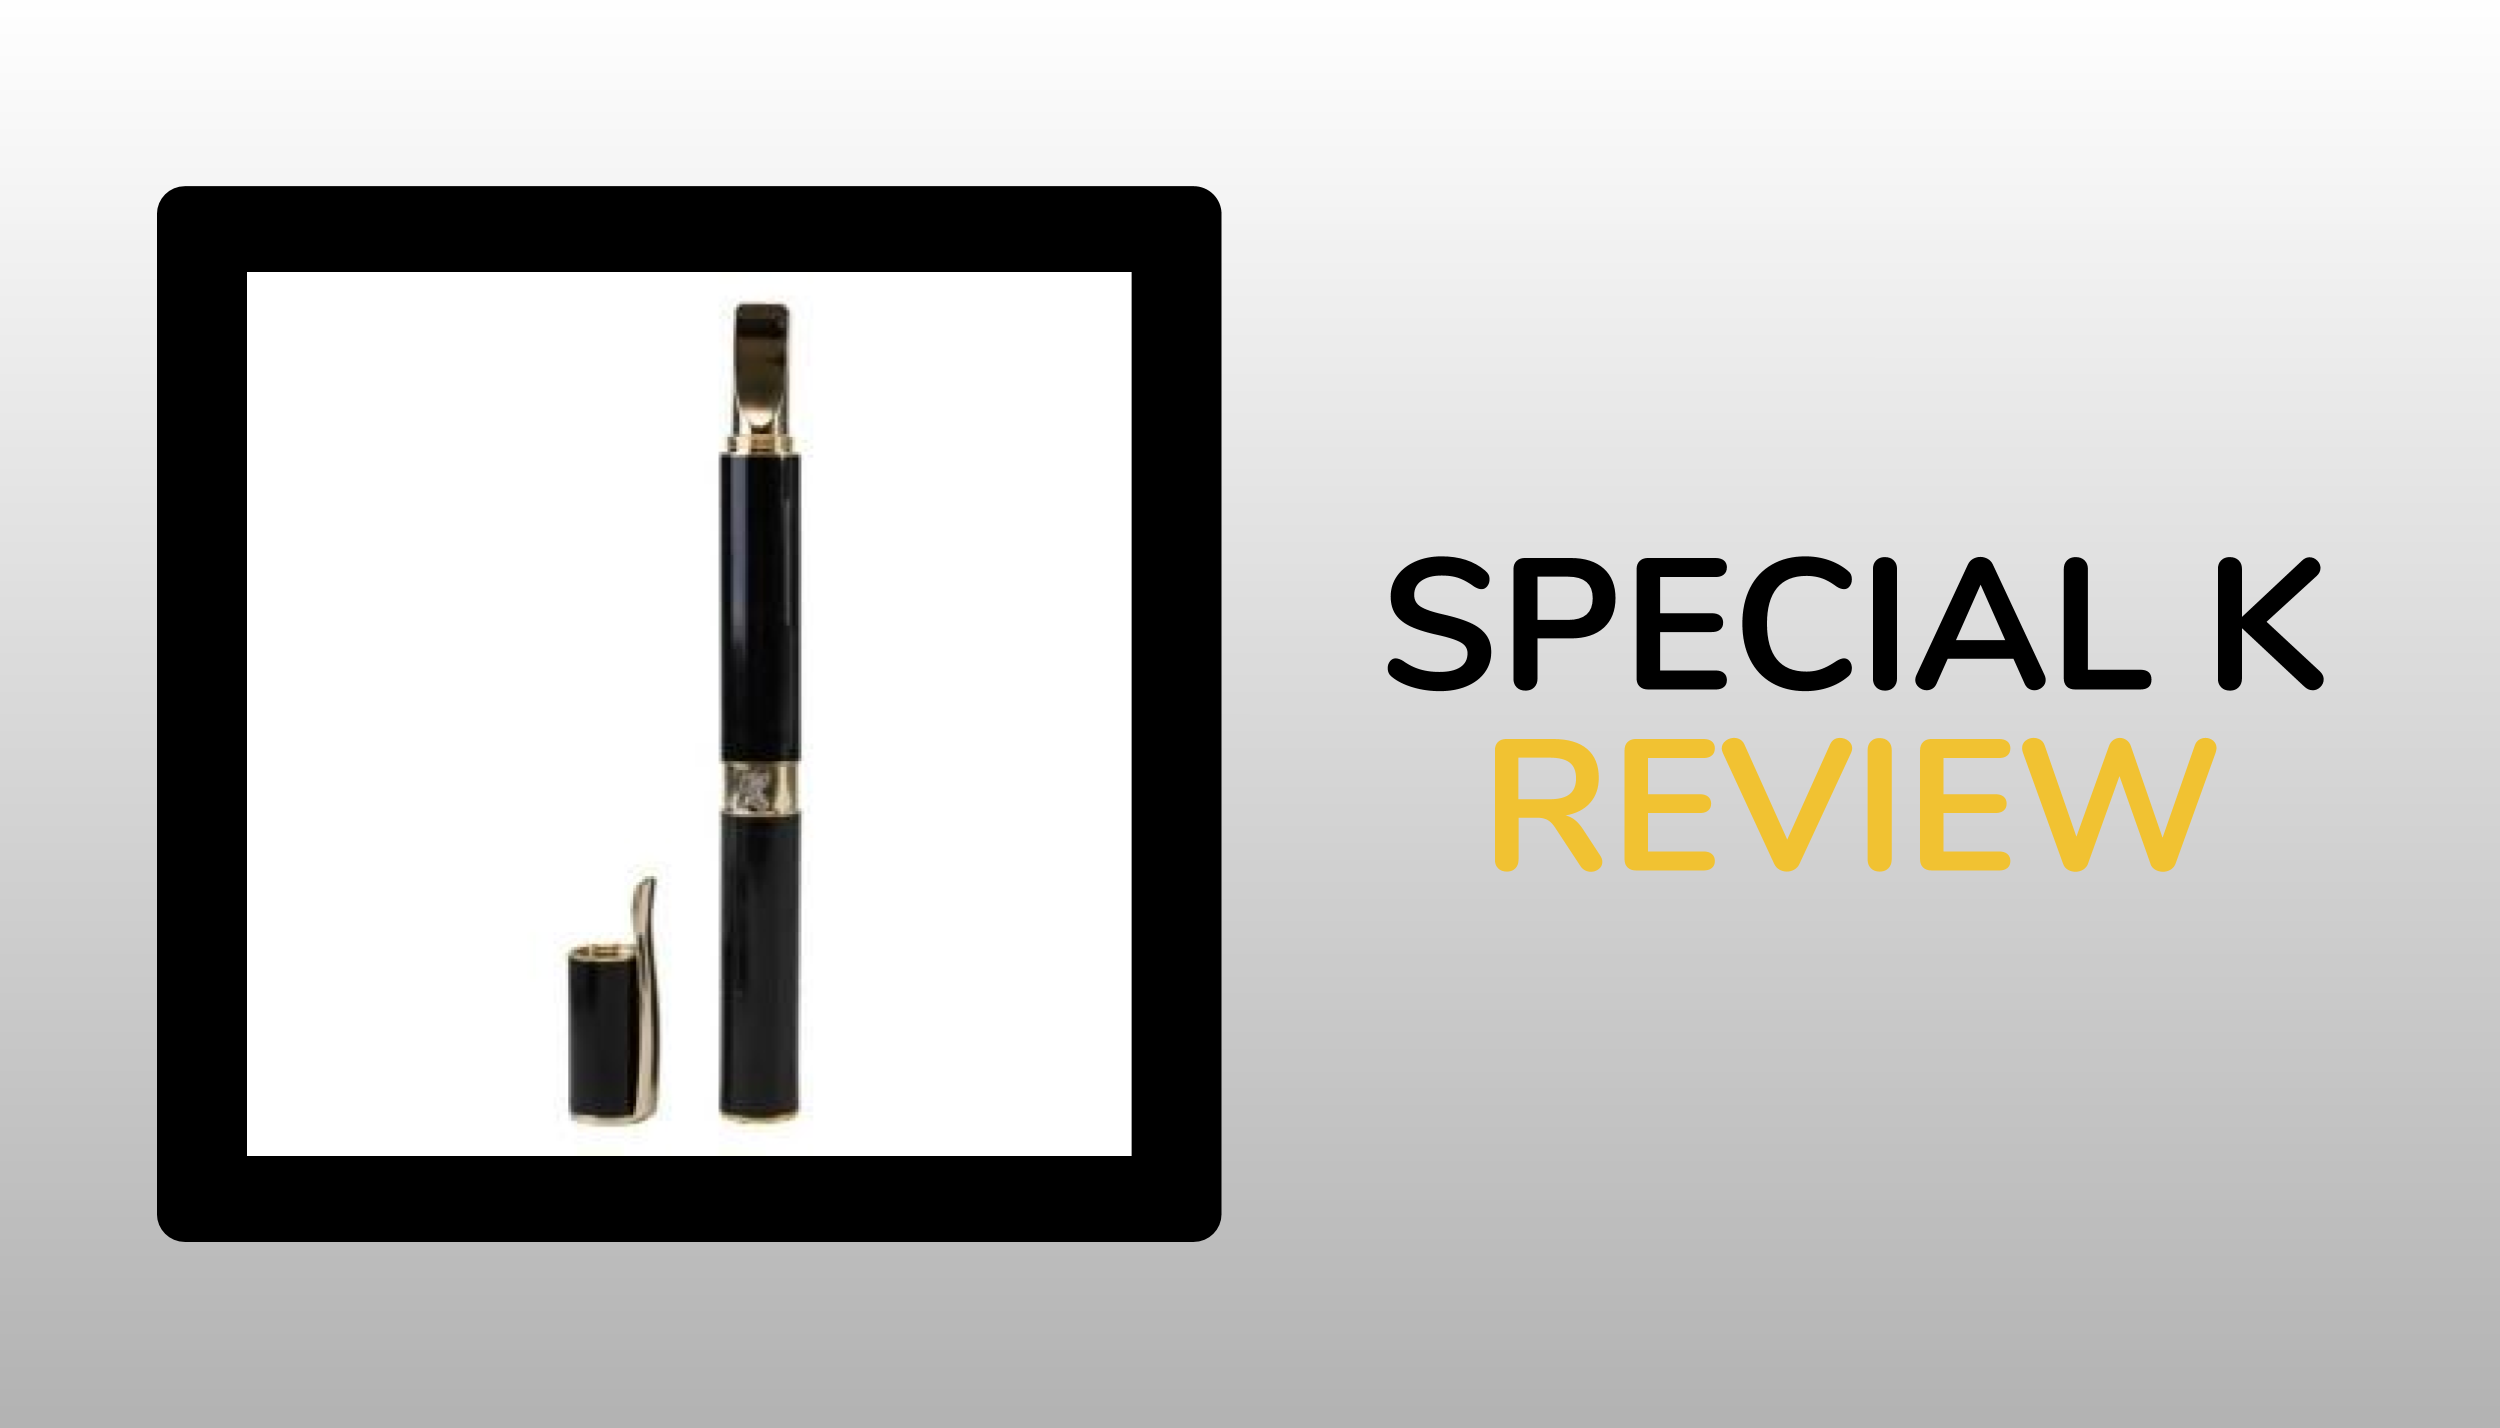 KandyPens Special K Vaporizer Review